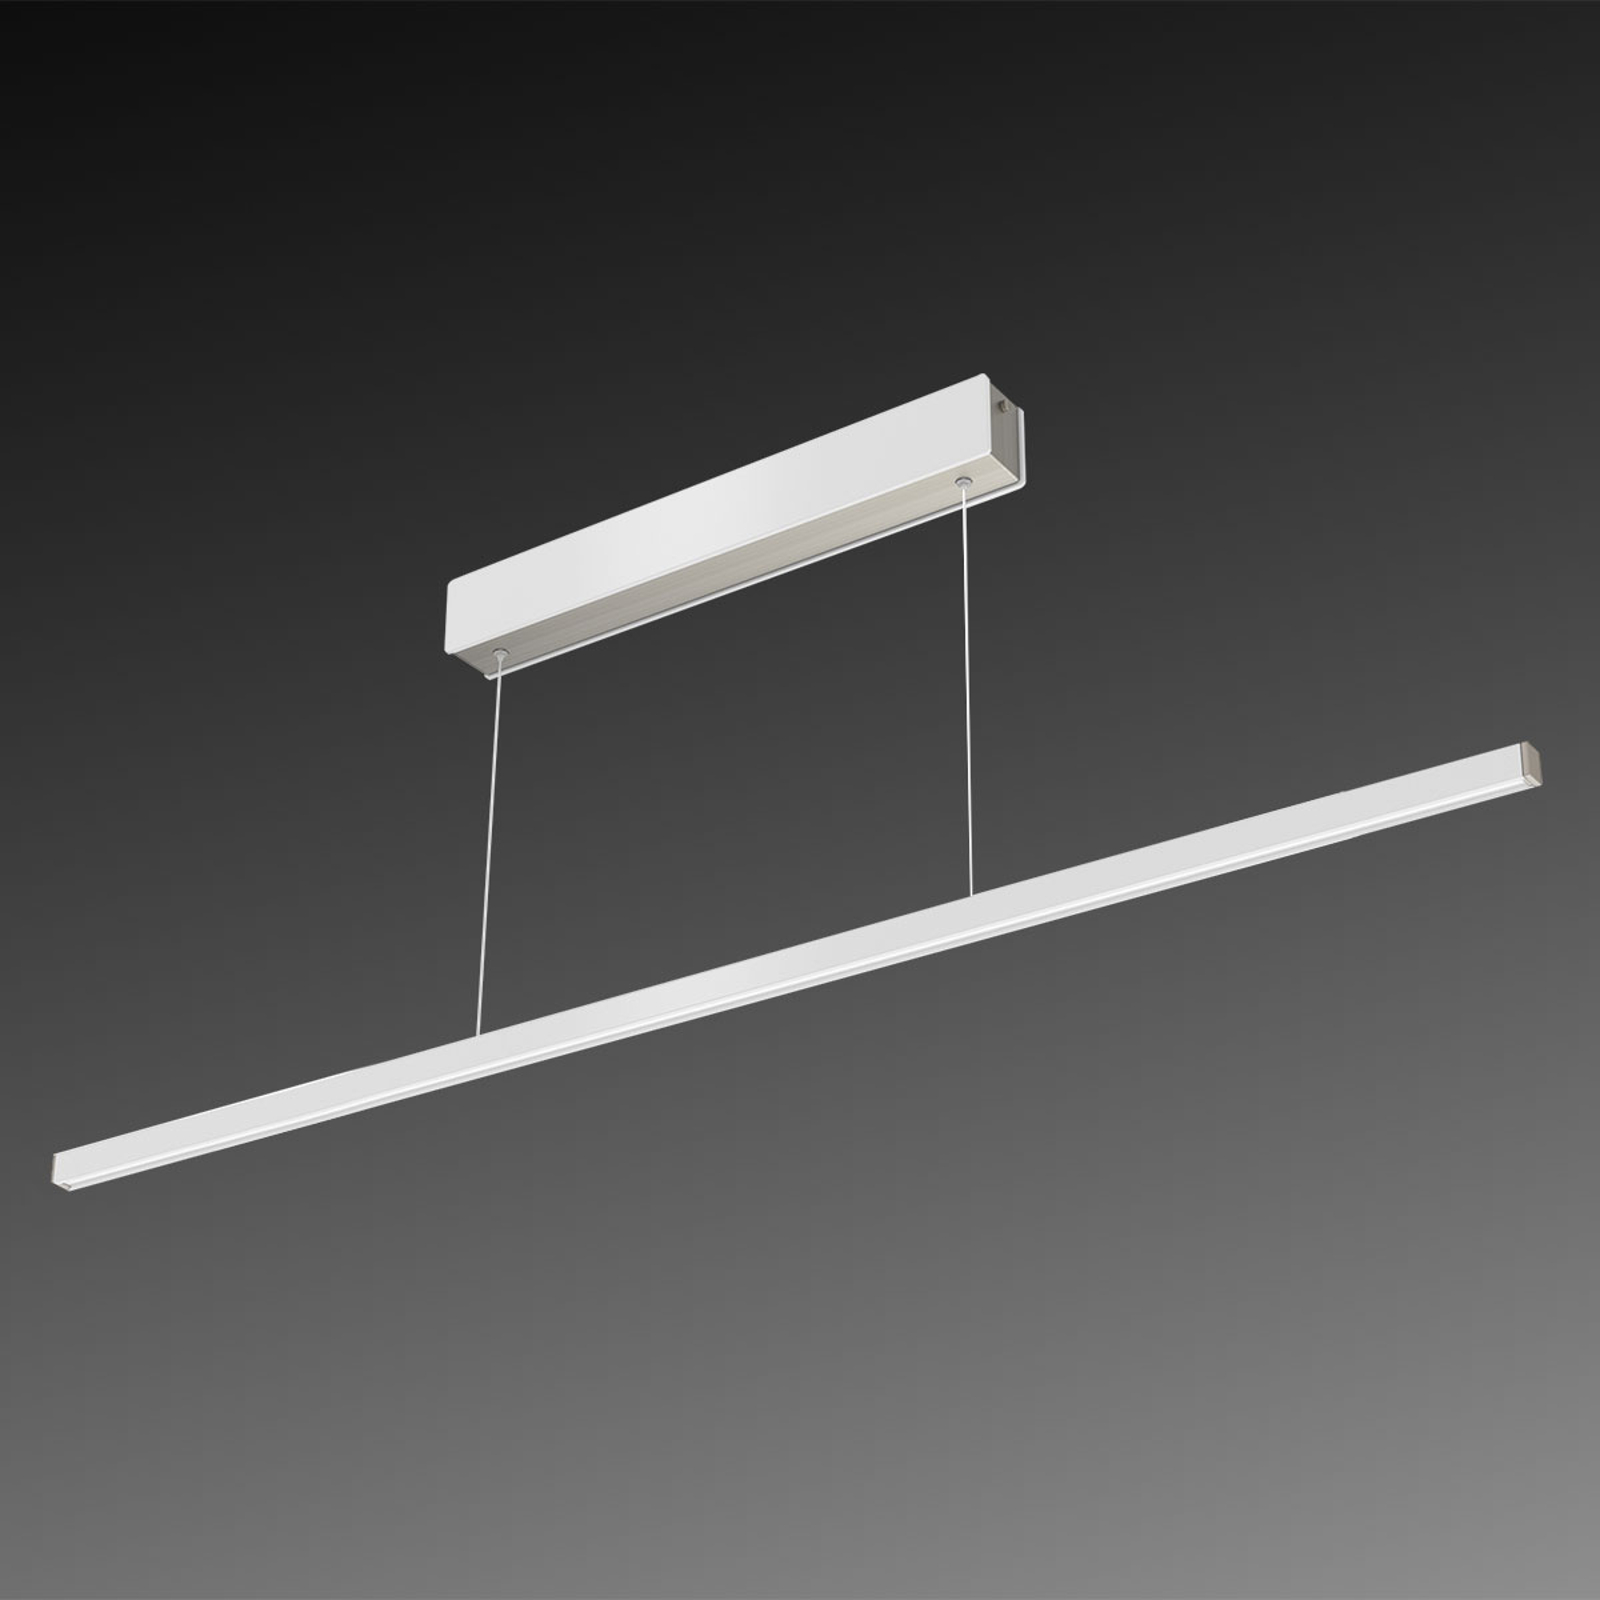 Suspension LED Orix, blanc, 120 cm de long